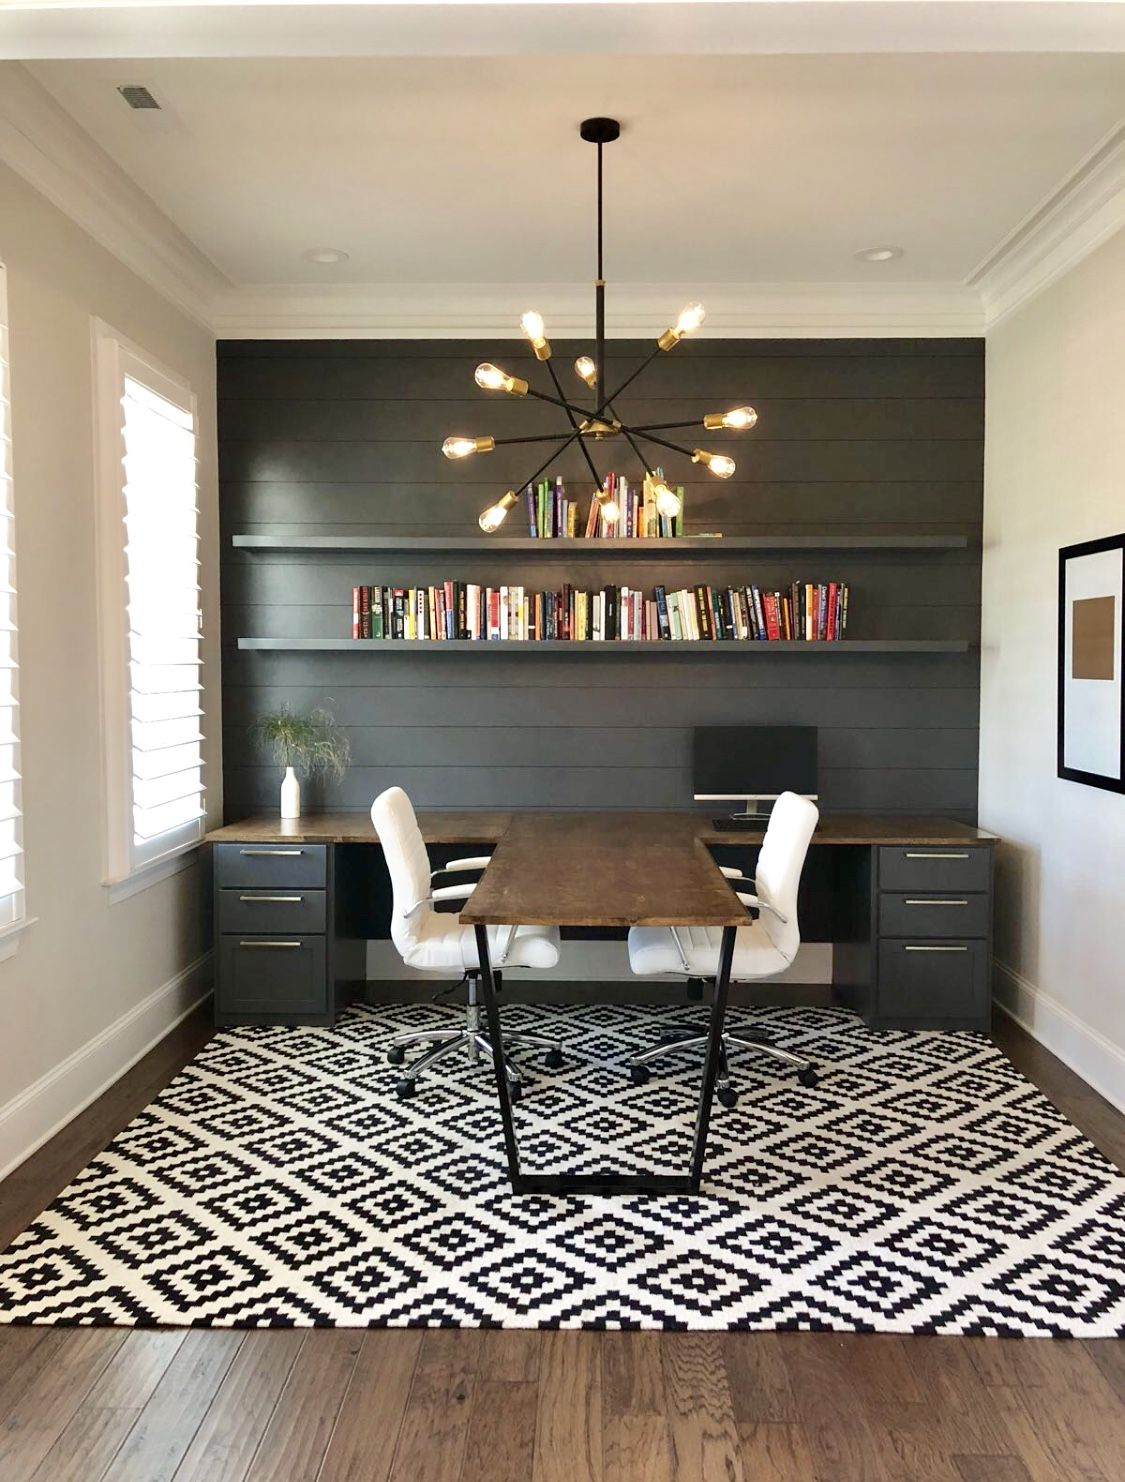 Home Office For Two Home Office Decor Home Office Space Home Office Design